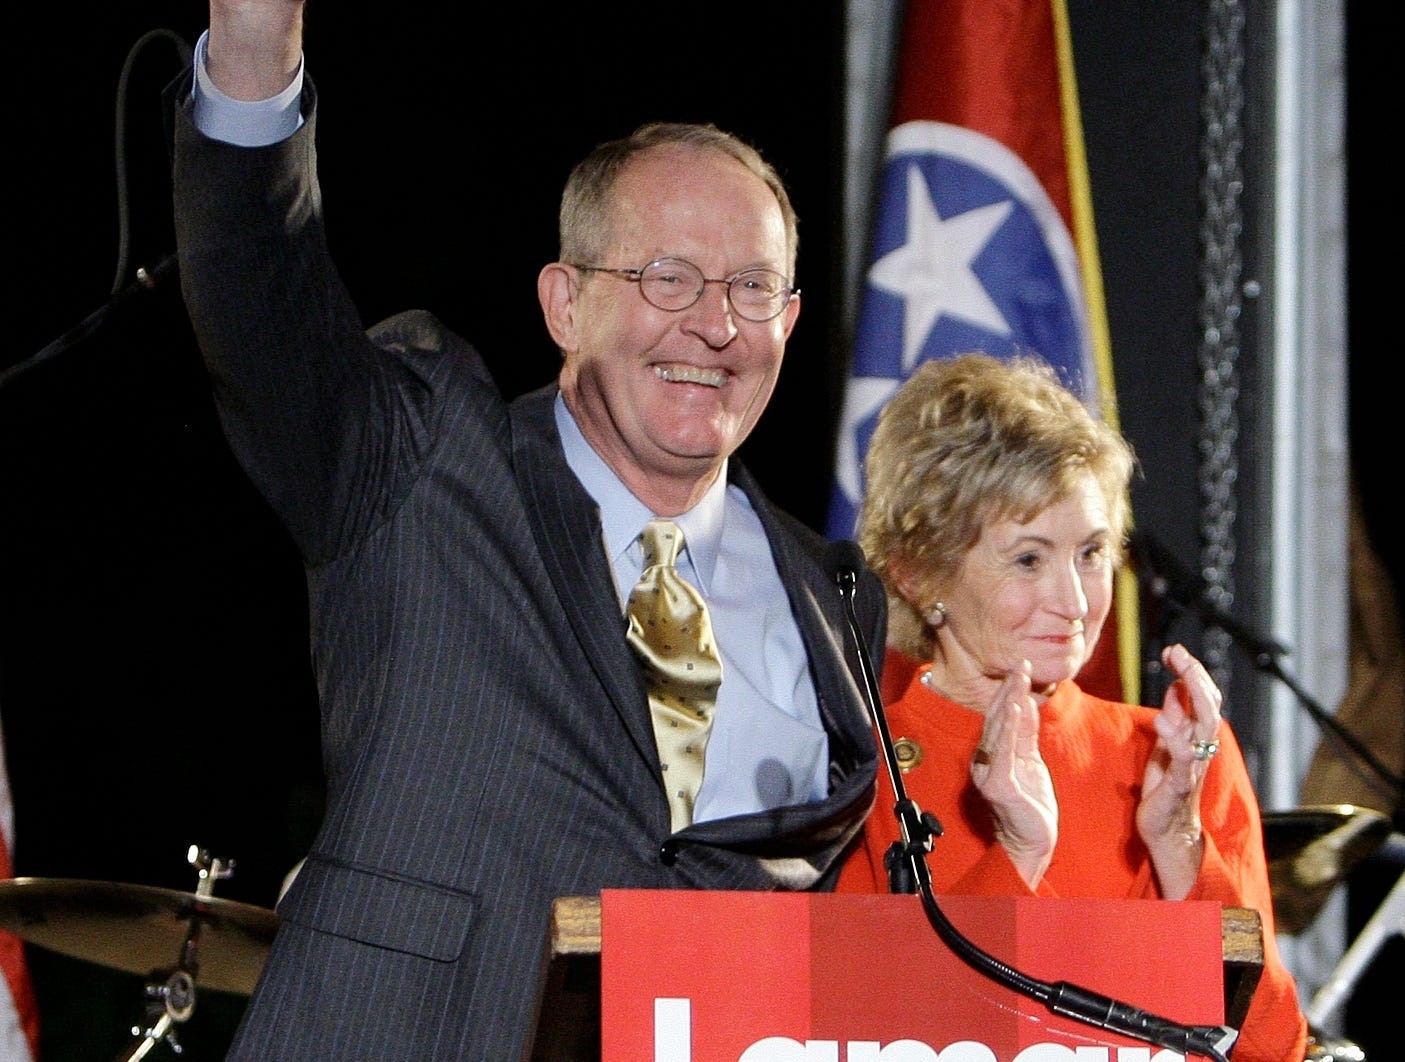 Sen. Lamar Alexander, R-Tenn., and his wife, Honey, greet supporters after he was declared the winner in his re-election bid Tuesday, Nov. 4, 2008, in Nashville, Tenn. Alexander defeated Democrat Bob Tuke.